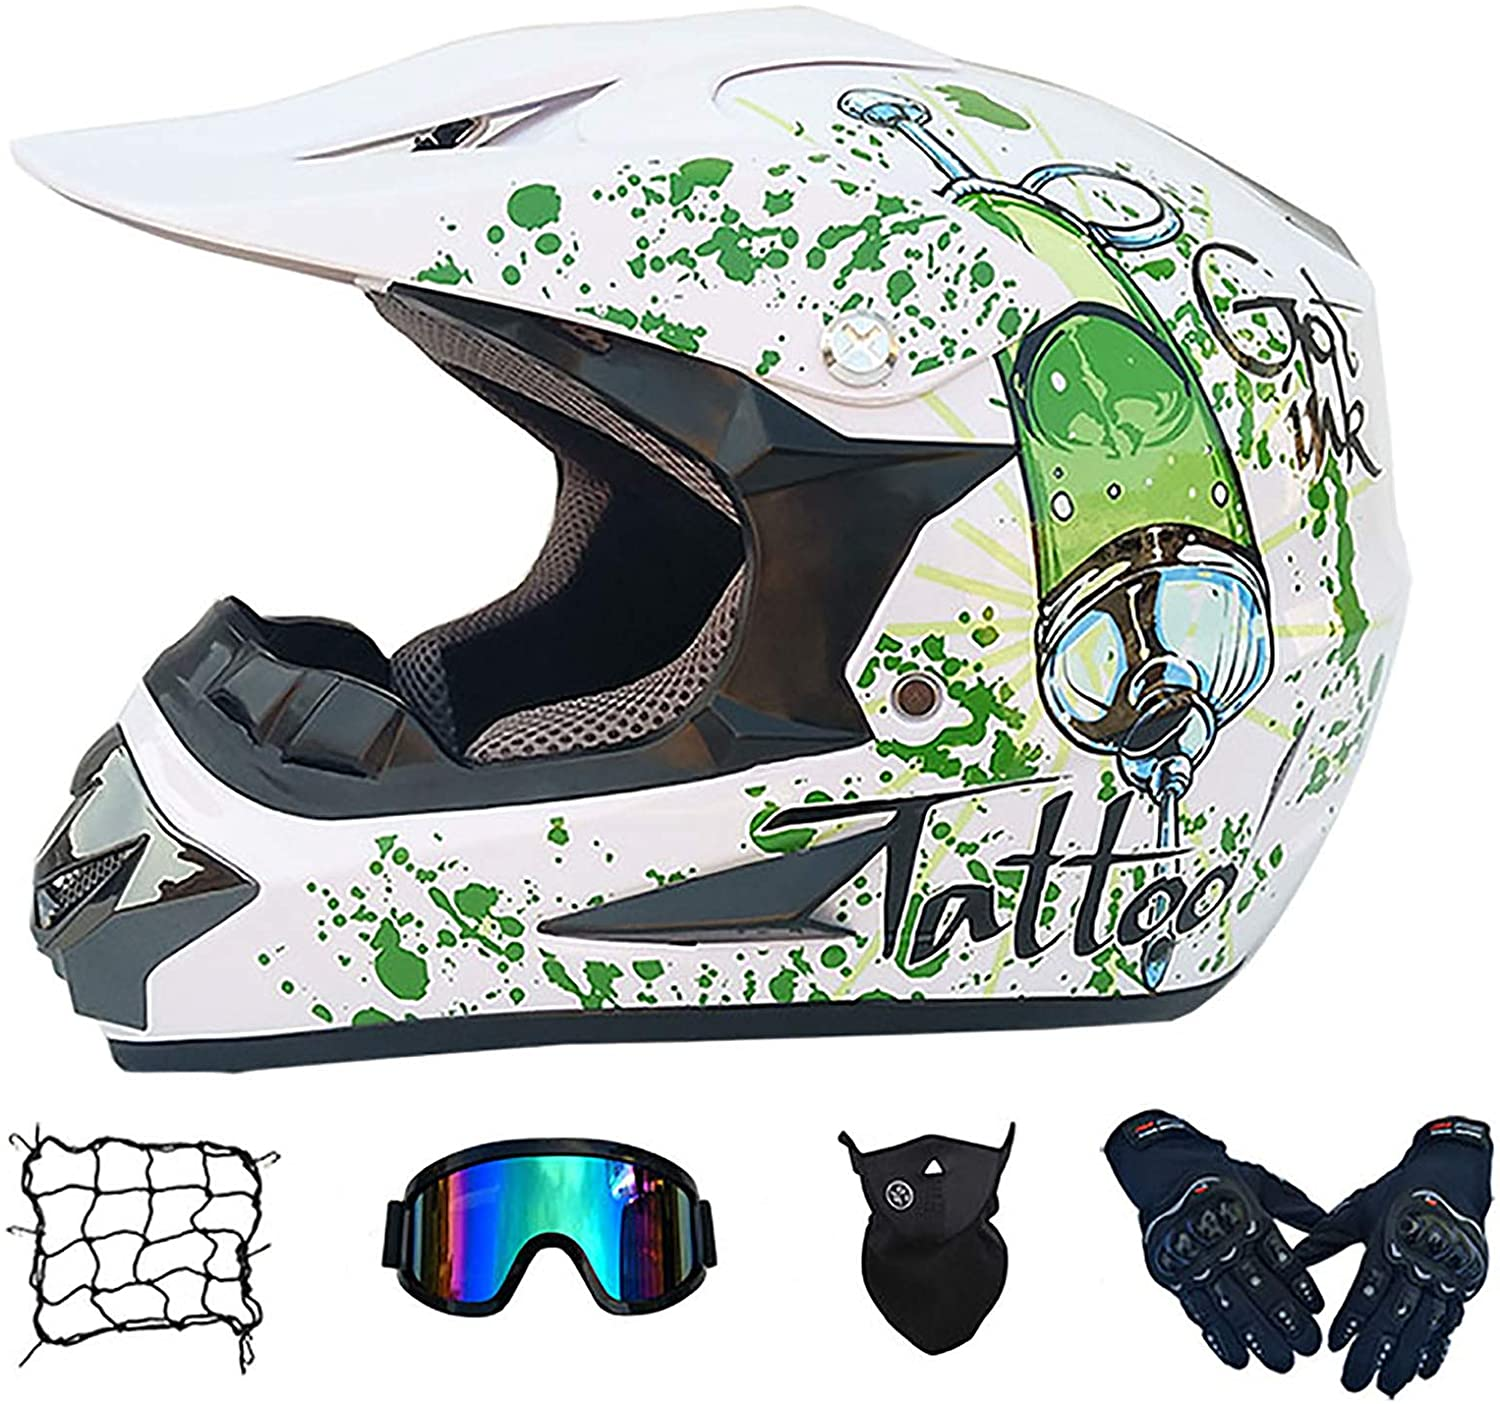 ZiFei Motocross Helmet Adult Full Face Off Road Racing Helmets with Goggles/Mask/Gloves, Motorcycle ATV MTB Unisex Downhill Quad Dirt Scooter Crash Helmets DOT Certified,Syringew,XL